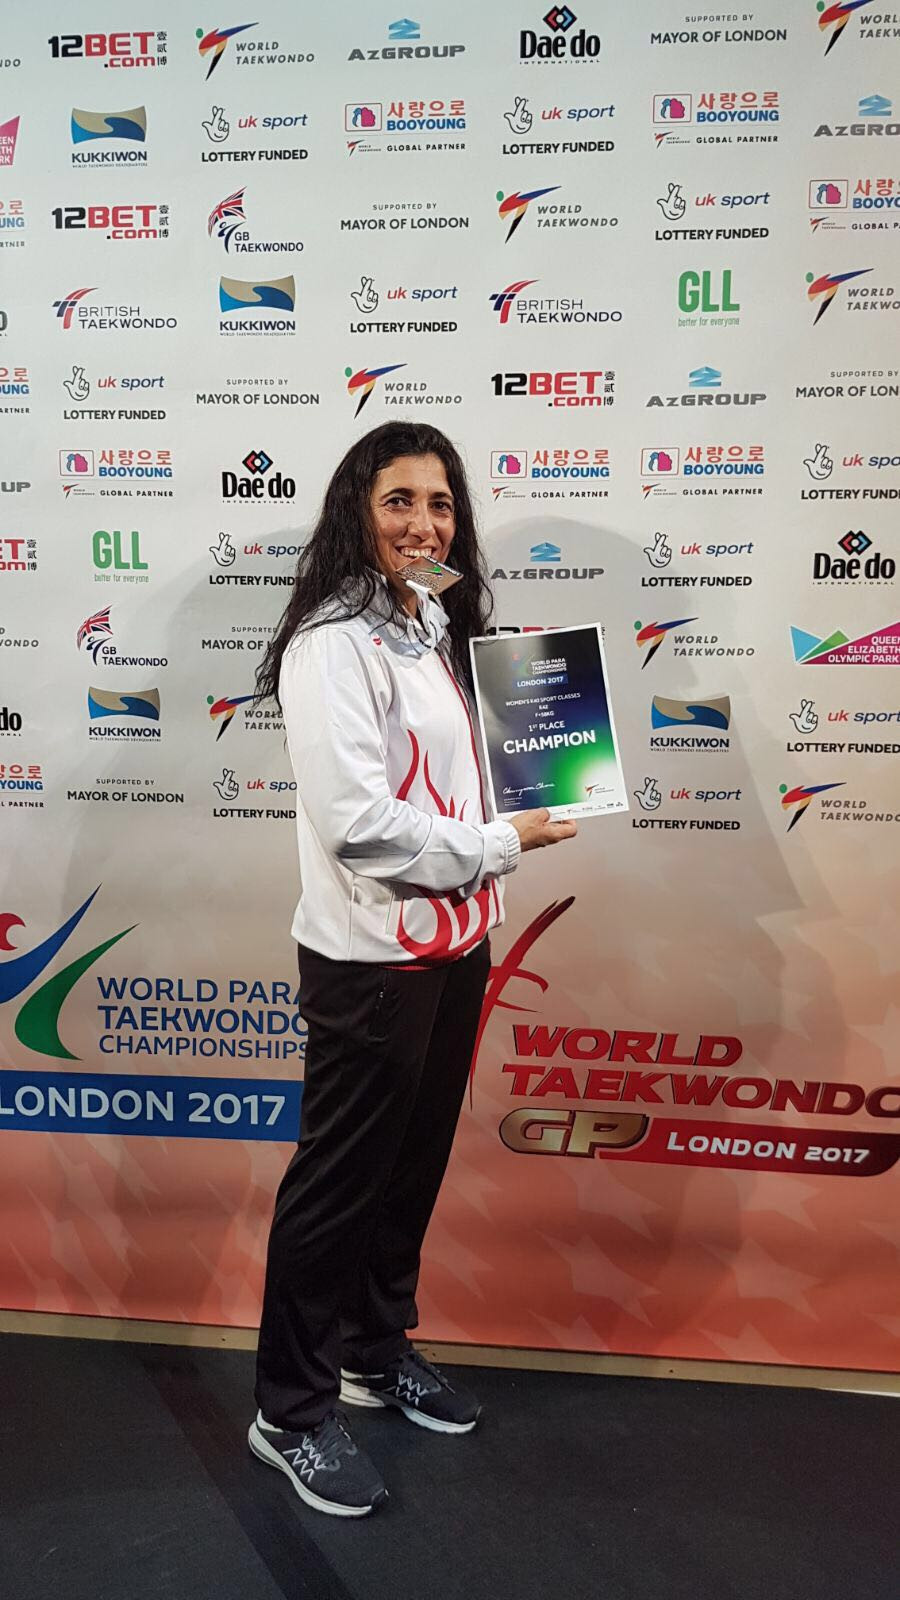 Turkish Para-taekwondo athlete Karatay staying positive during COVID-19 pandemic